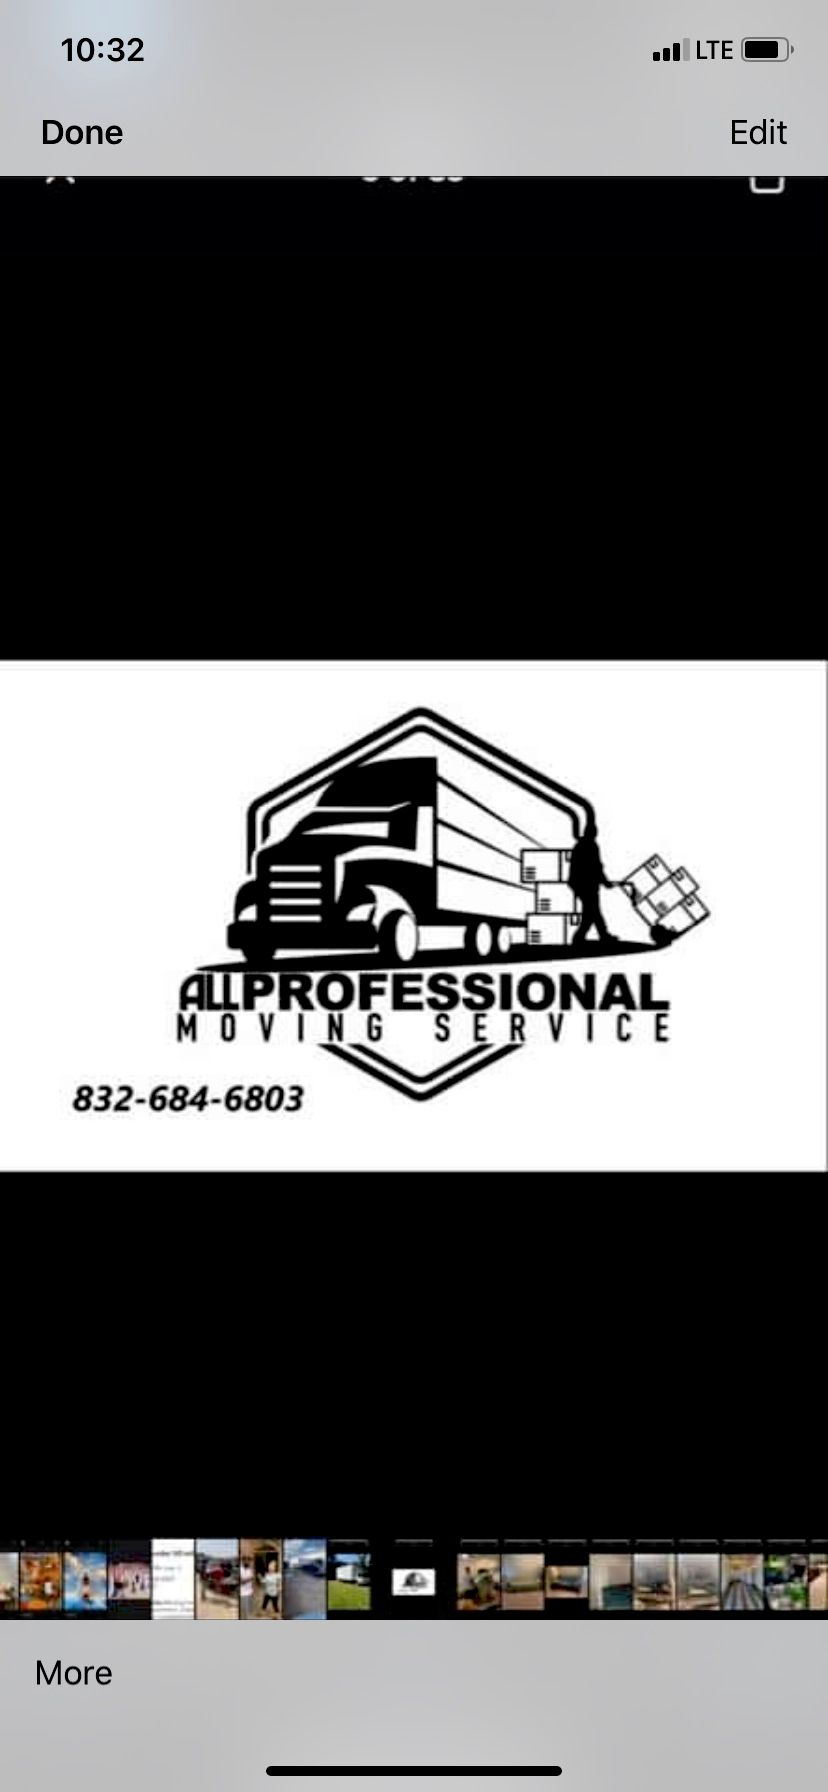 All professional moving services